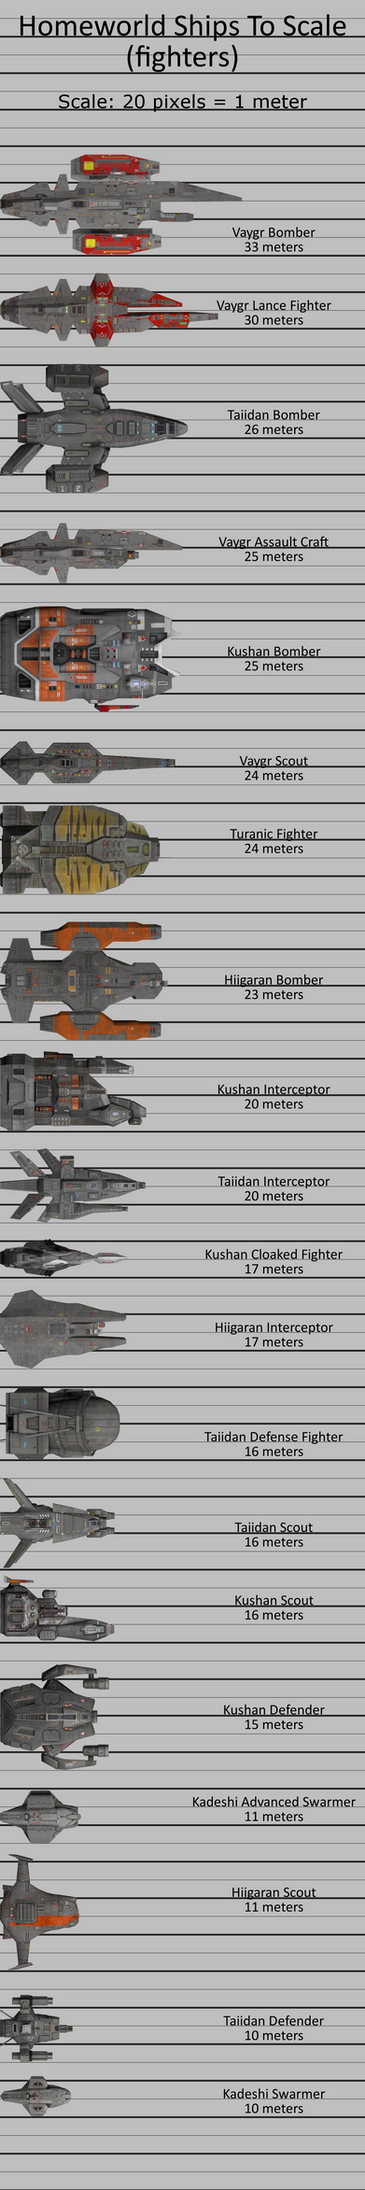 Homeworld Ships To Scale (fighters) by doberman211